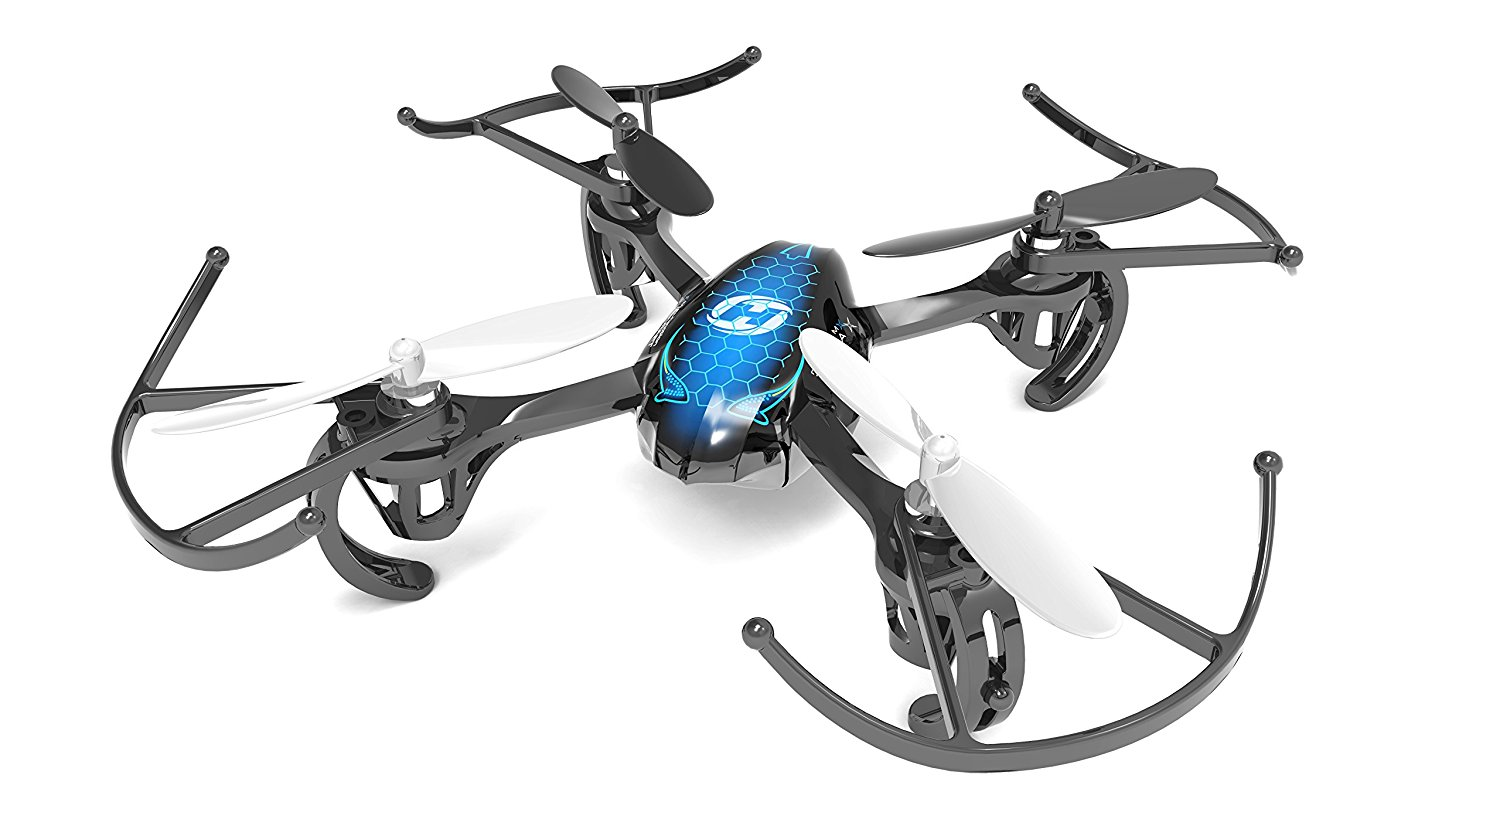 Predator Mini RC Helicopter Drone 2.4Ghz 6-Axis Gyro 4